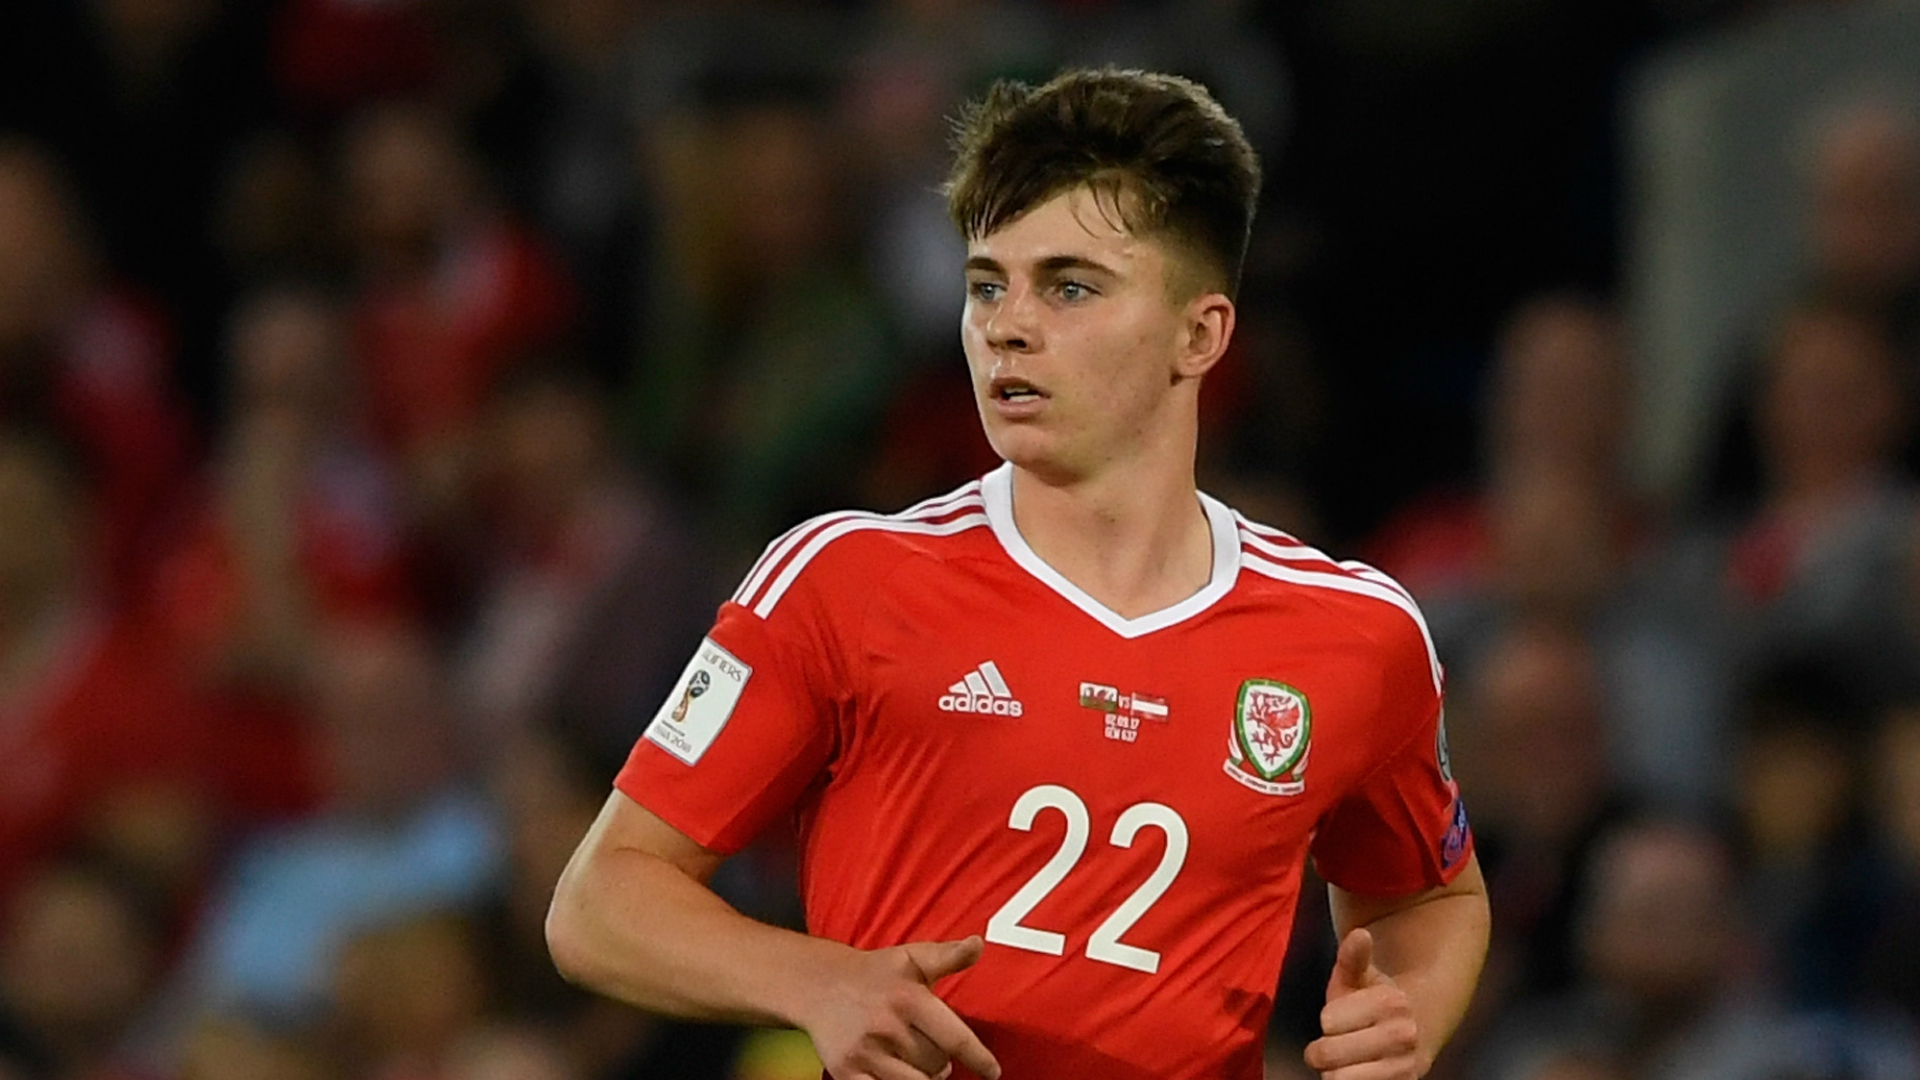 Liverpool wonder kid, Woodburn, can become a great, says Wales manager